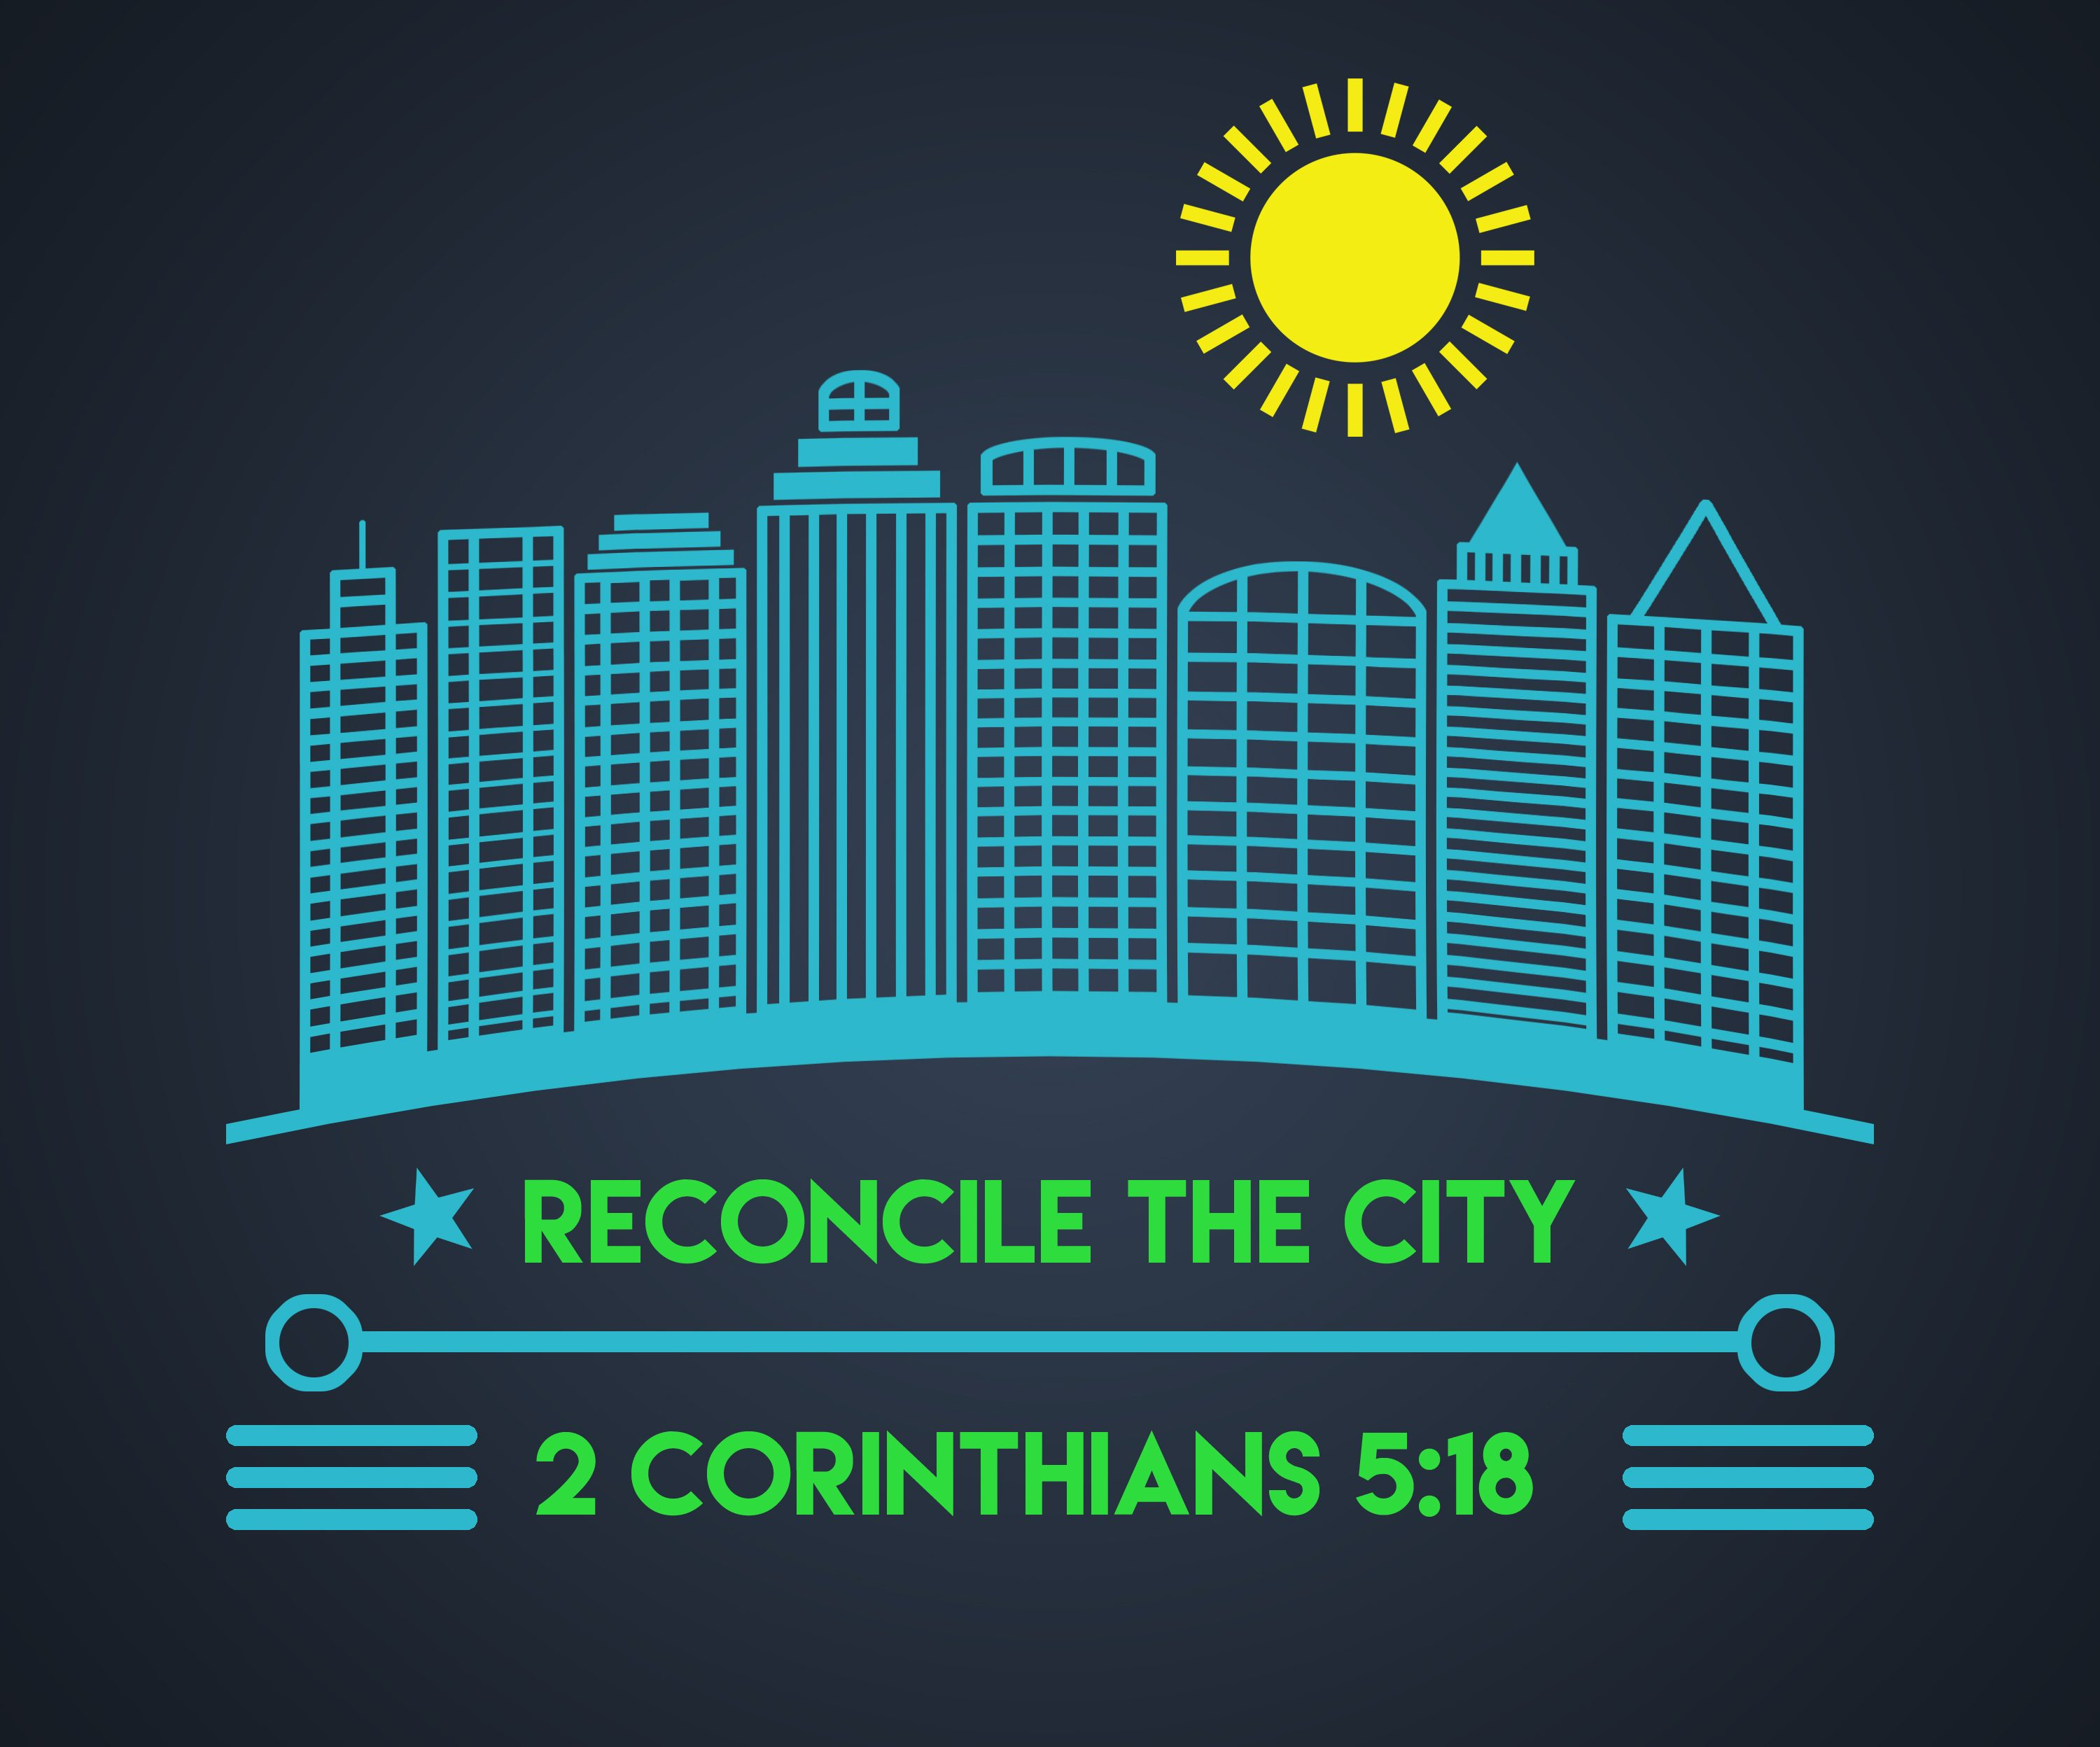 Reconcile the City